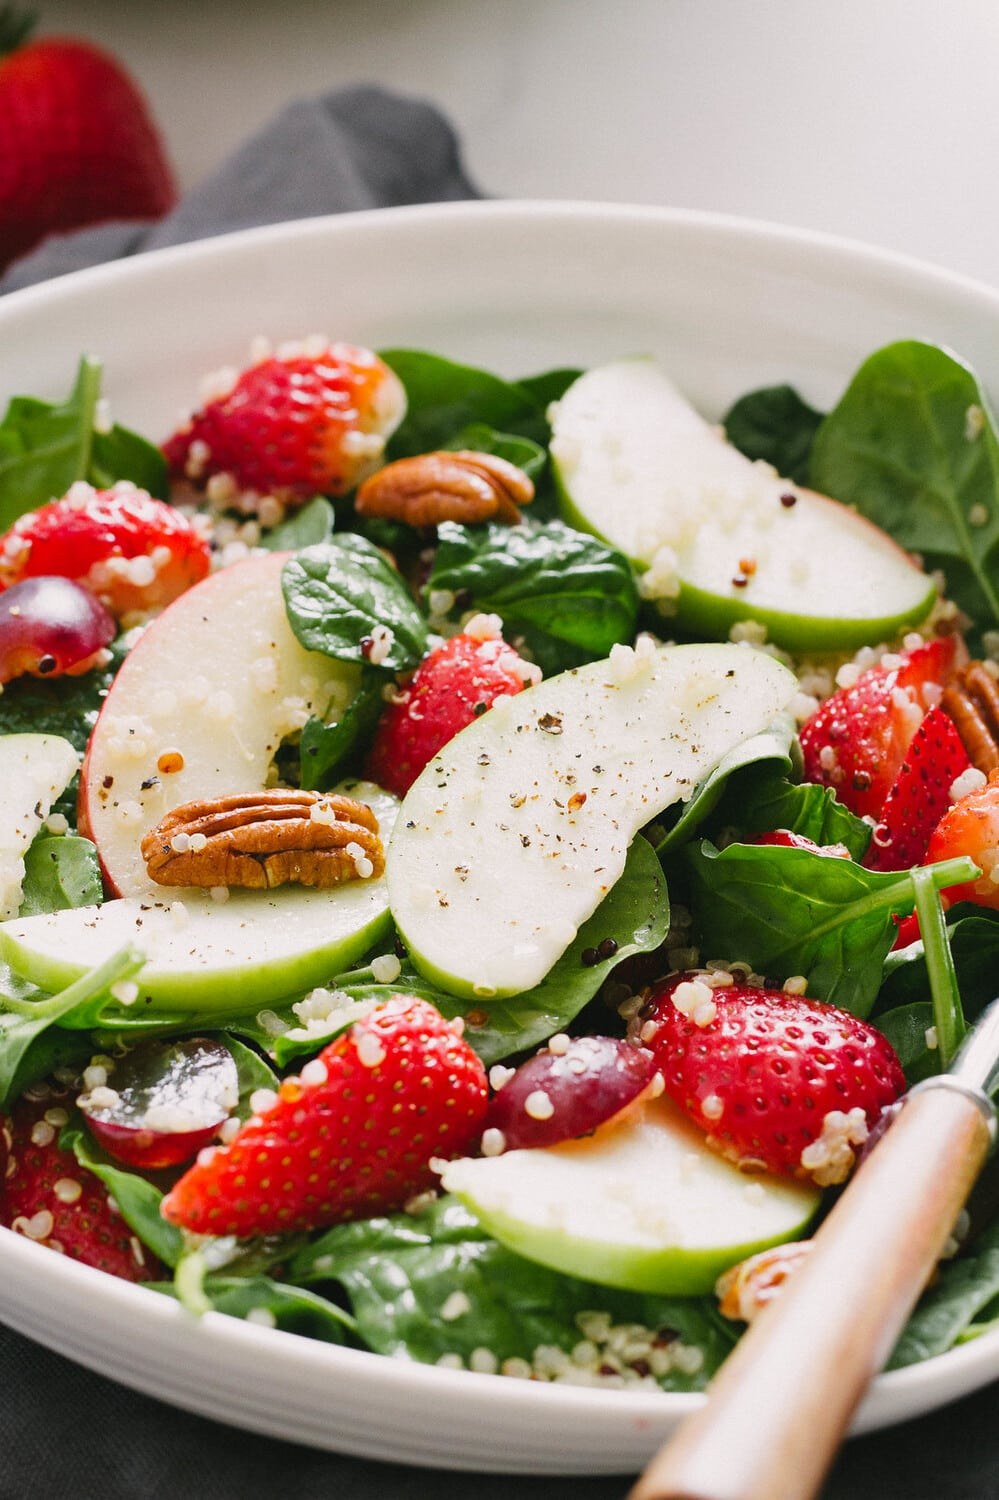 side angle view of spinach salad with strawberries, apples and quinoa.